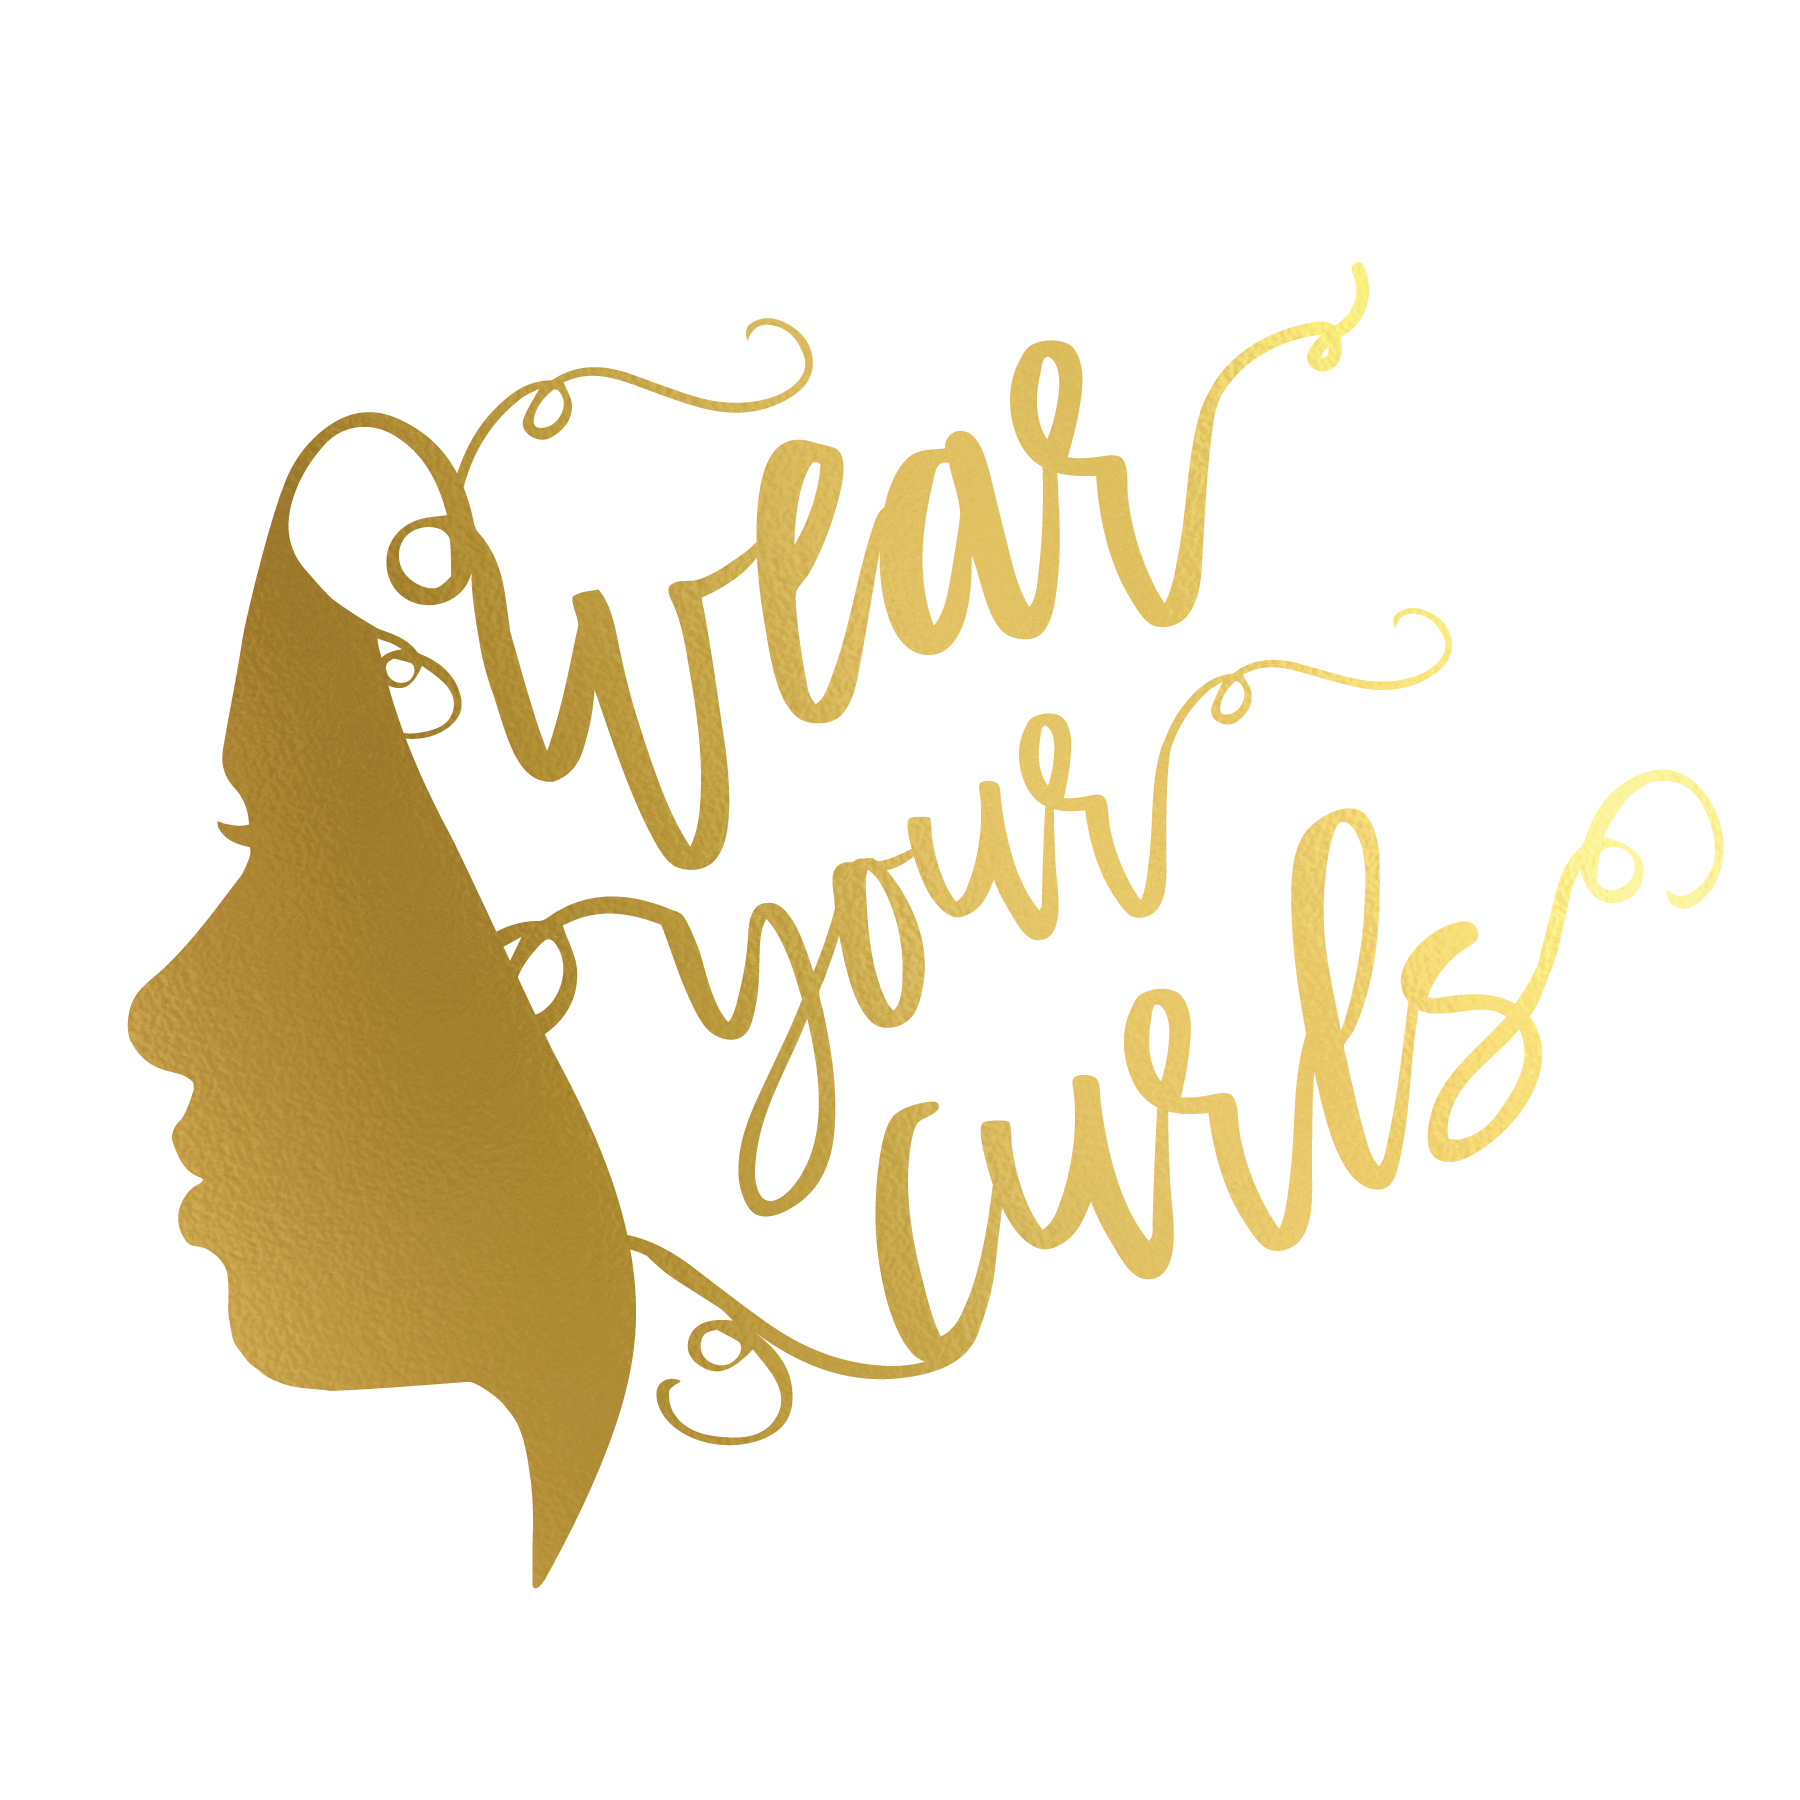 About Wear Your Curls